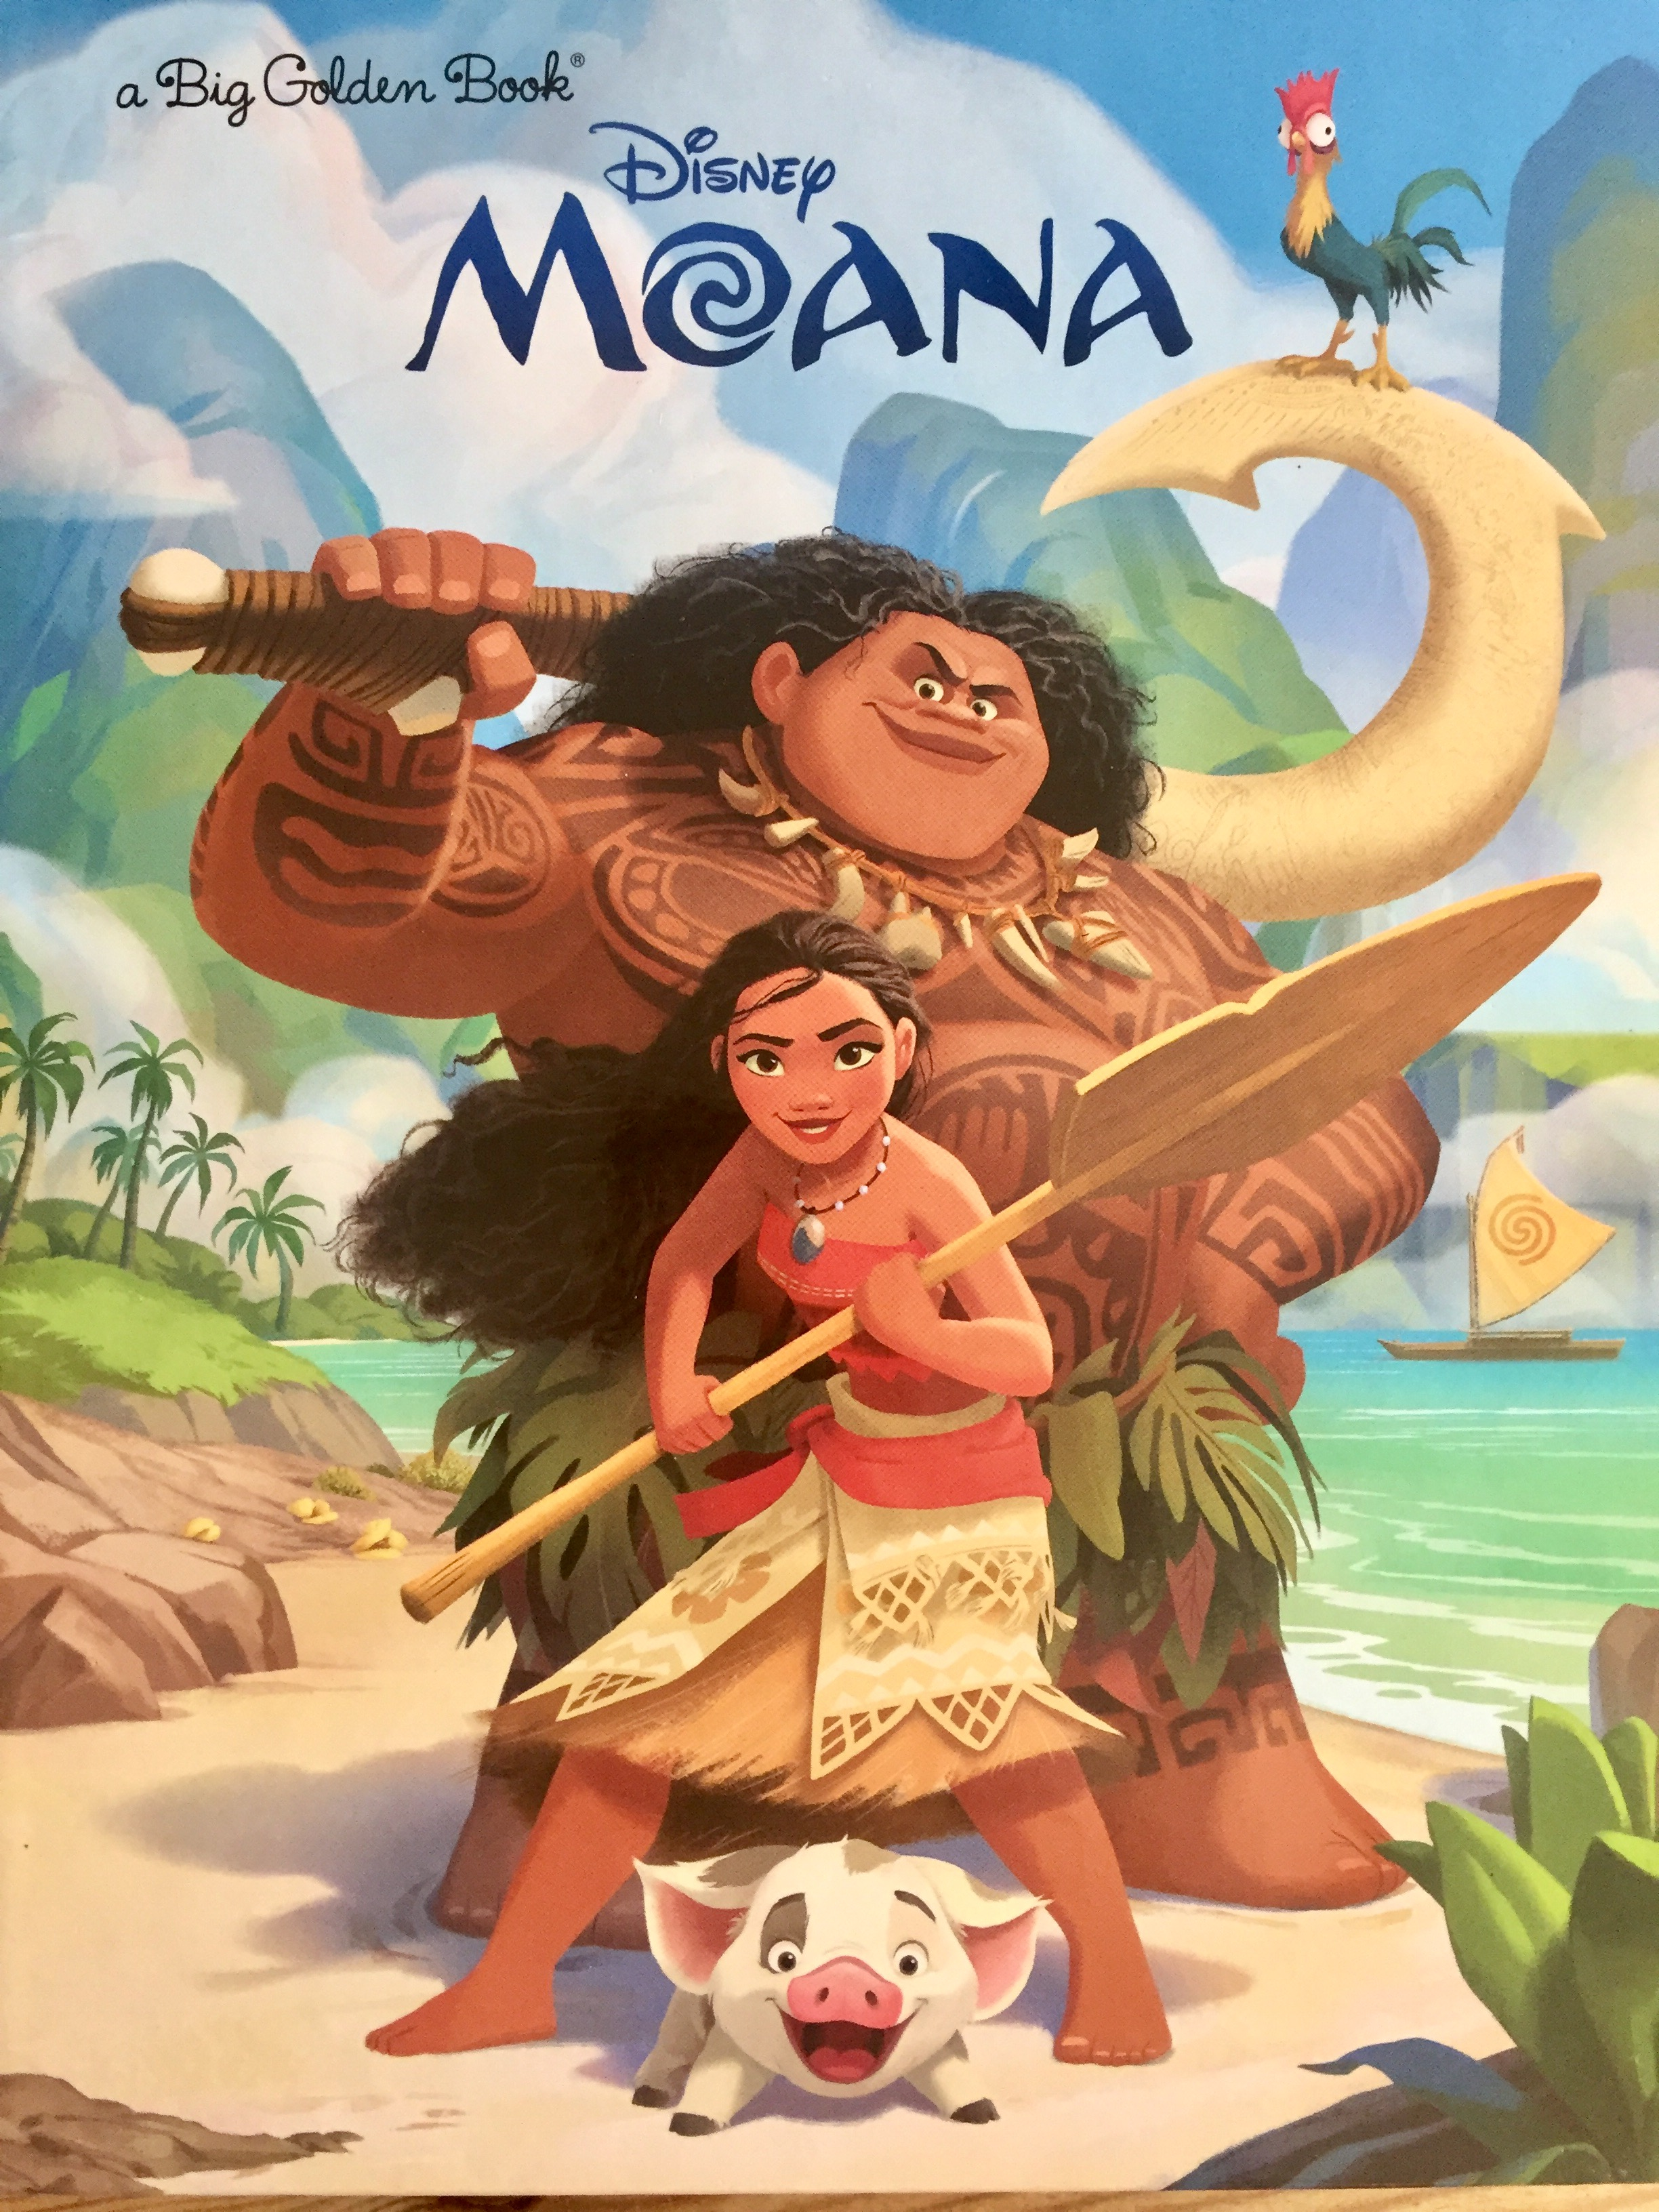 Moana Ruined My Kid's Perception of Death